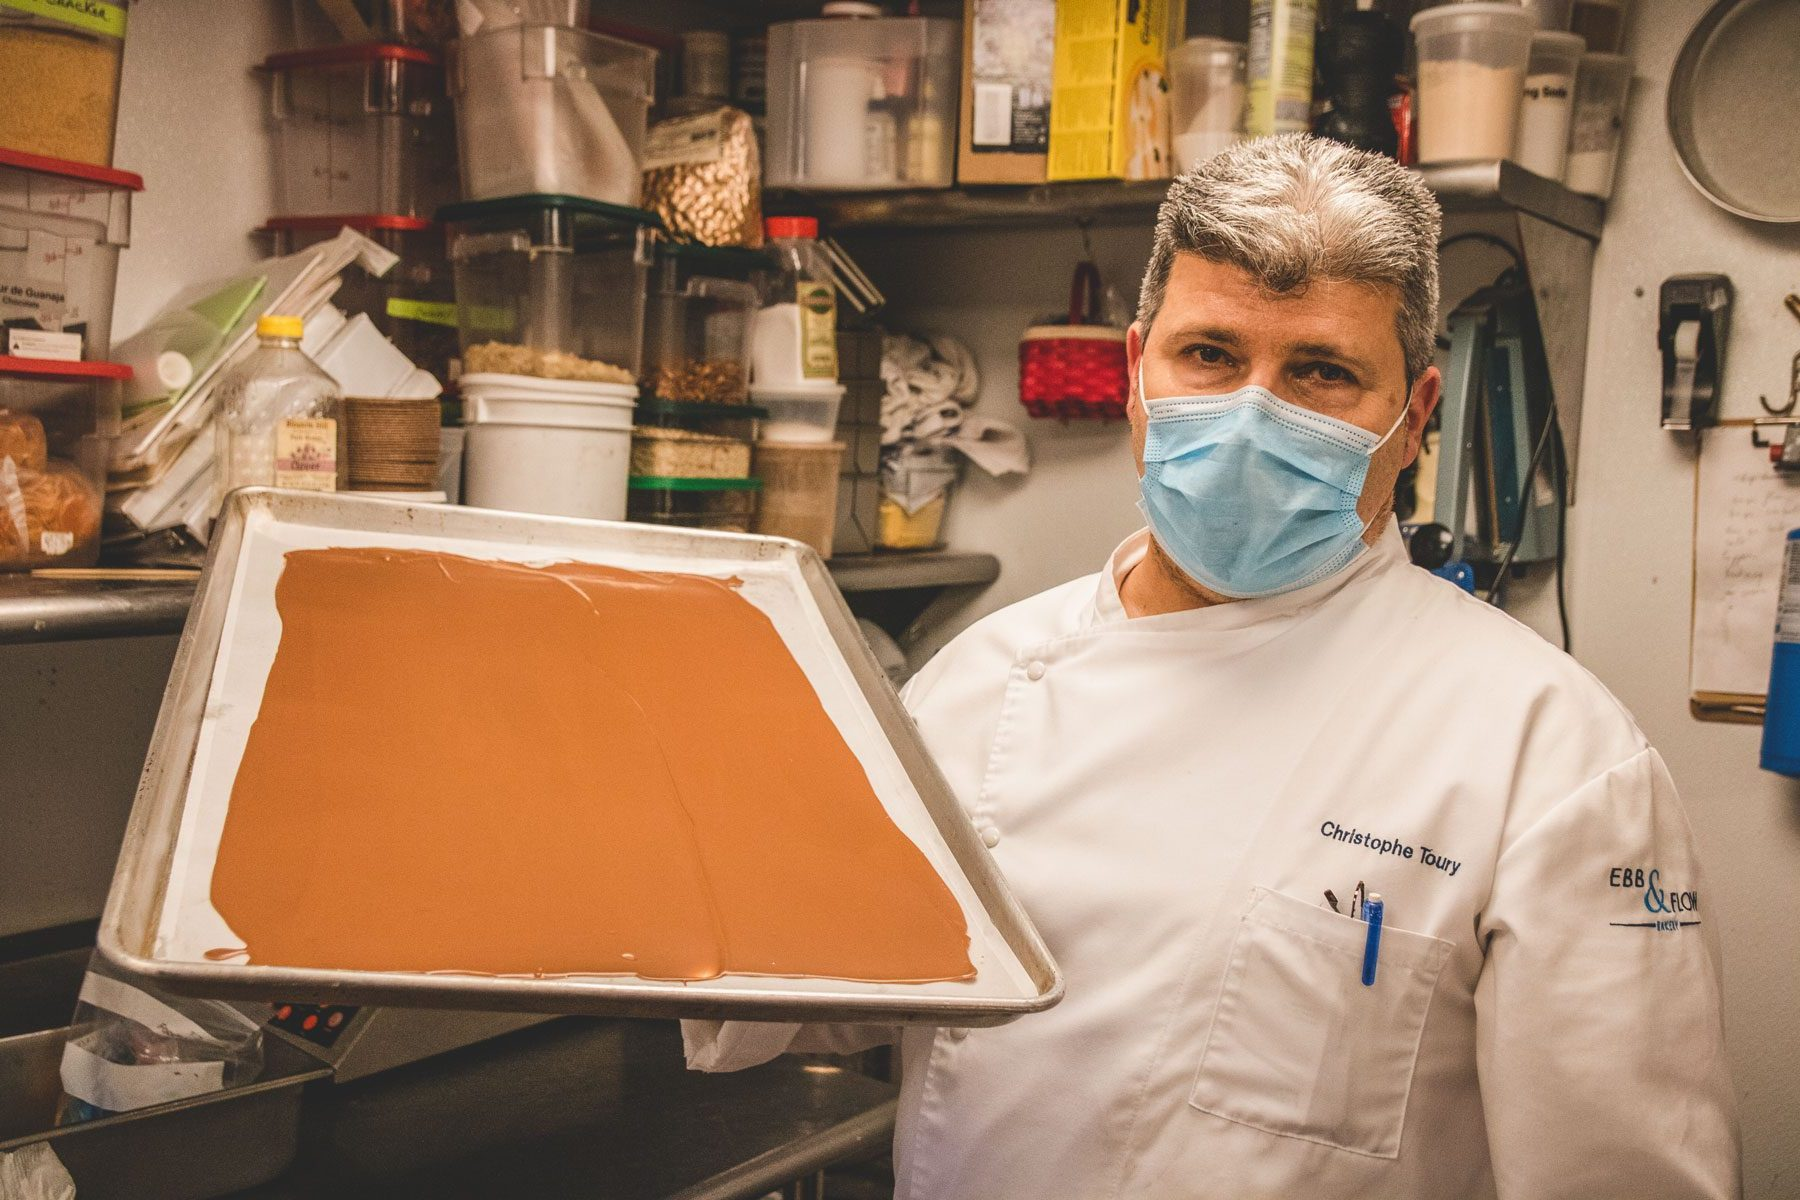 Chef Christophe Toury holding a sheet of chocolate.